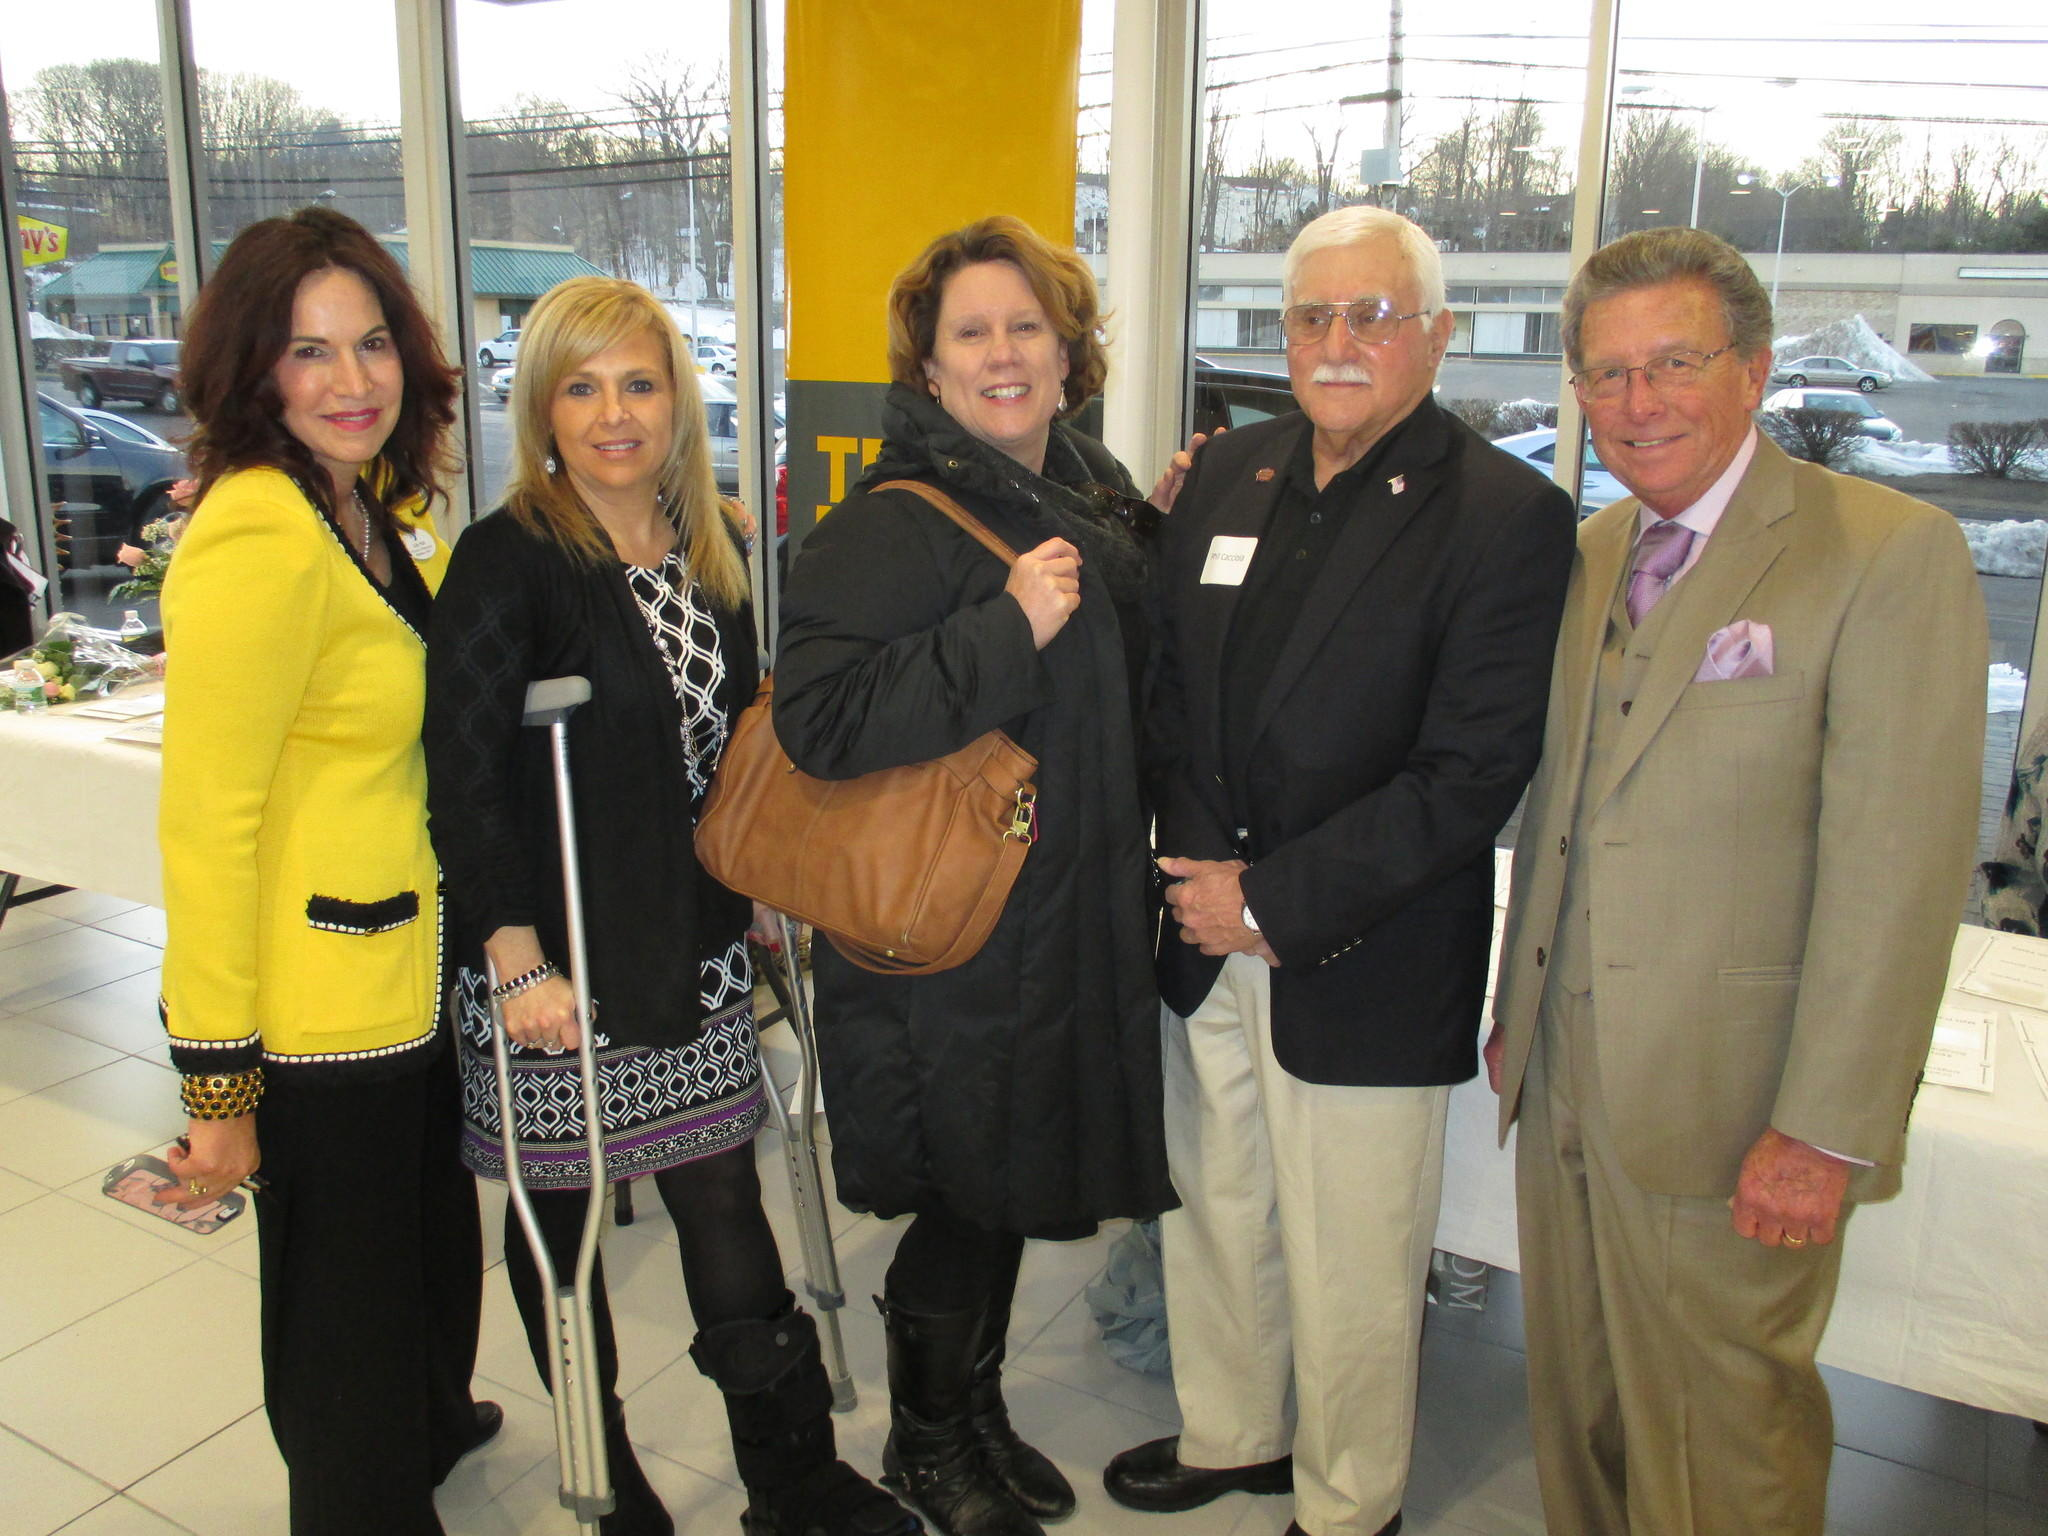 From left to right: Judy Hall, development director Middlesex YMCA; Kelly Smith, campaign chair; Sue Dionne, membership director; Phil Cacciola; Henry Coe.